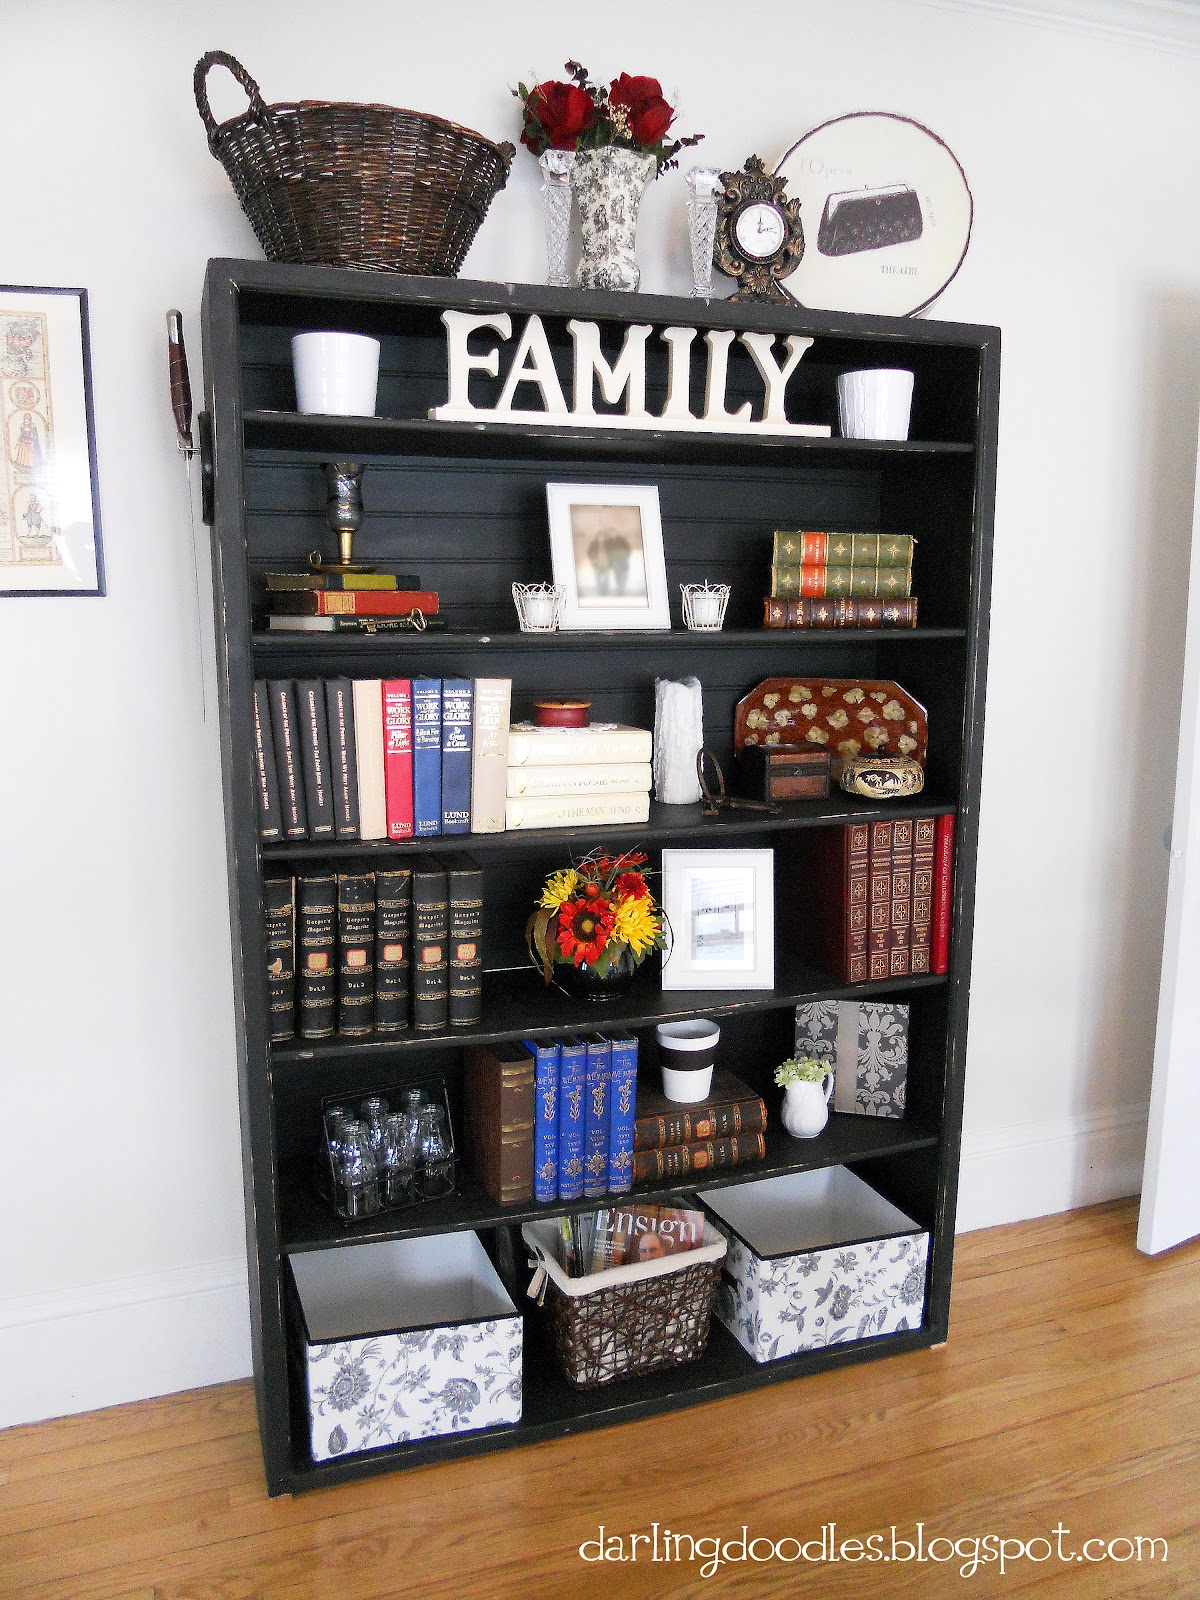 Showcase the Bookcase & Other Tips - Darling Doodles | Darling Doodles